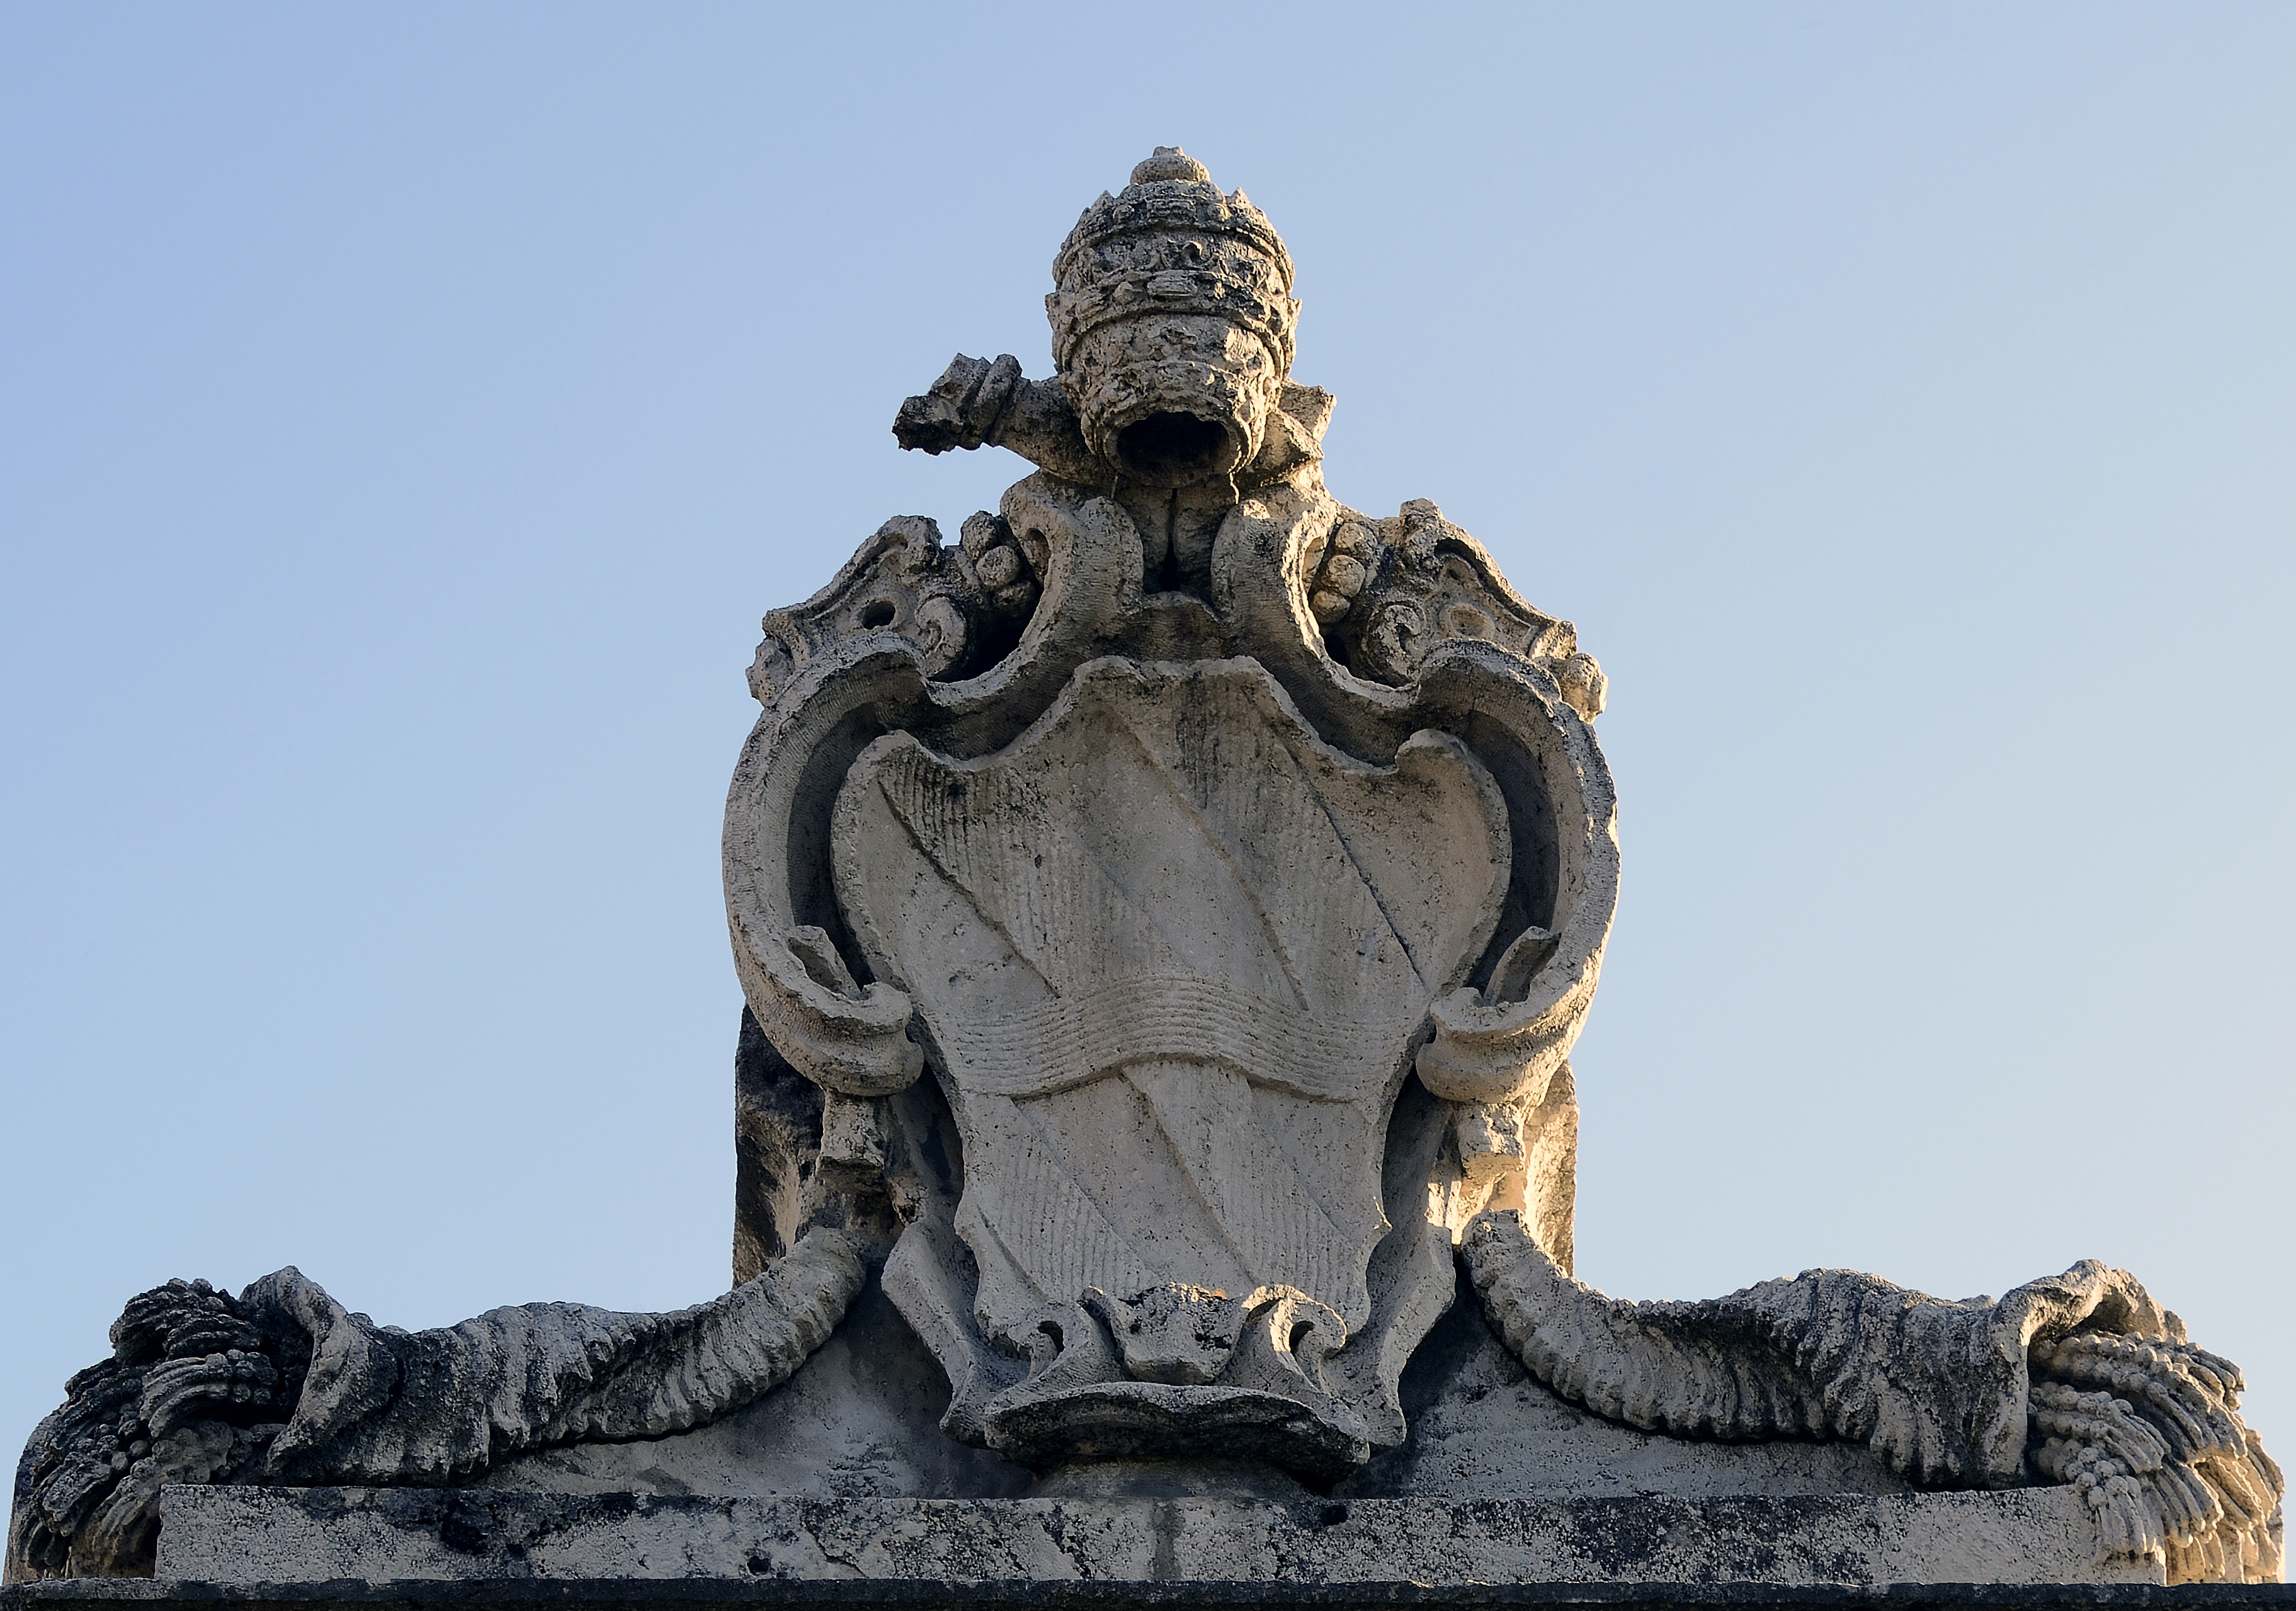 File:Coat of arms of Clemens XII on fountain vermicino of Luigi  Vanvitelli.jpg - Wikimedia Commons